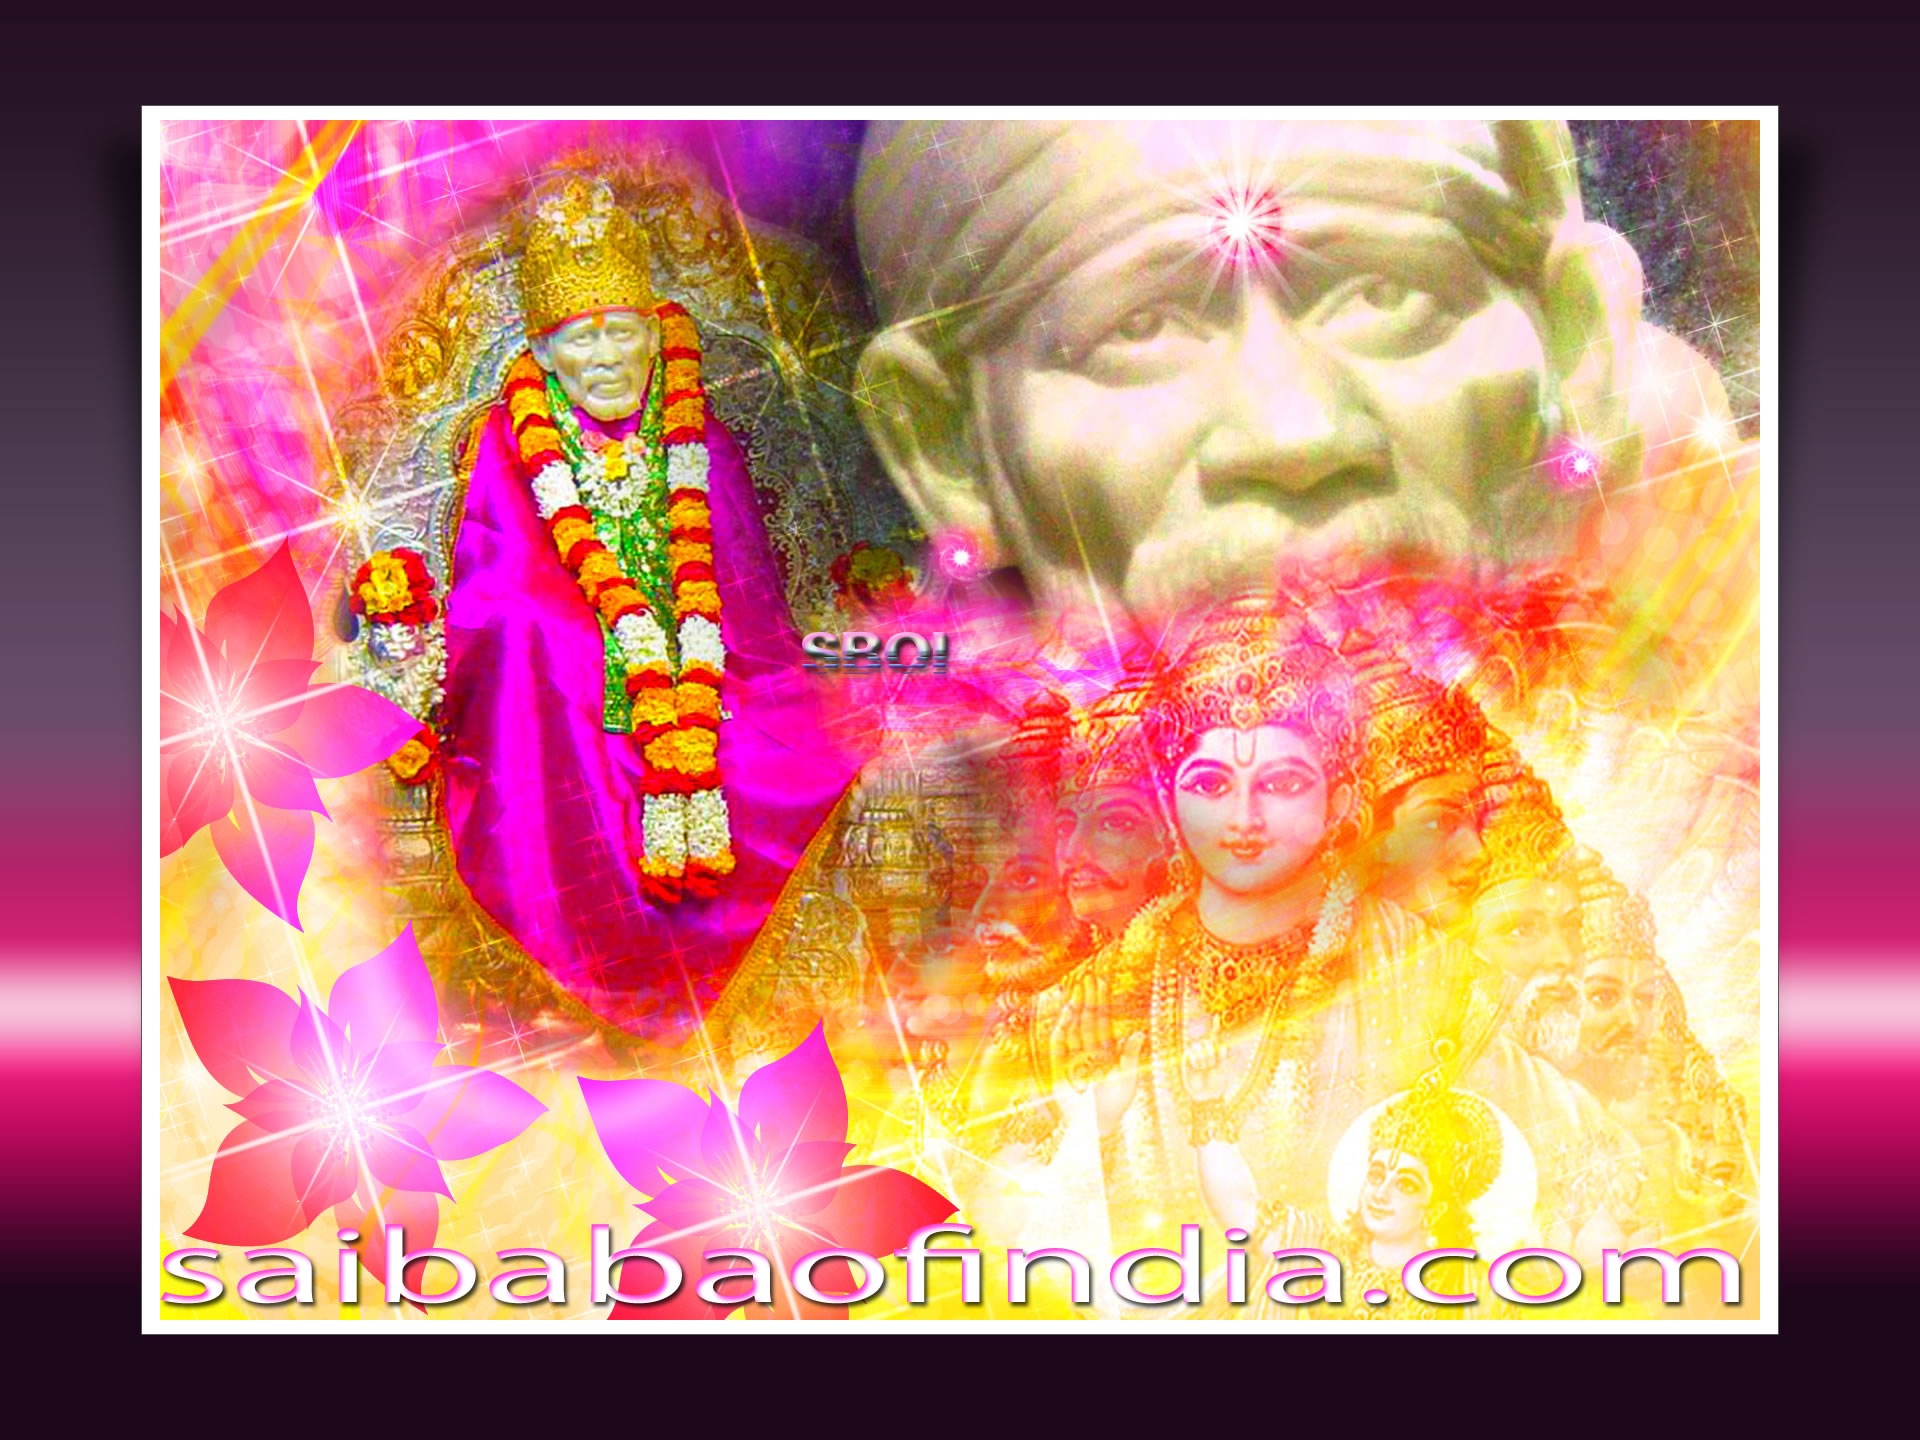 Great Wallpaper Name Thakur - SBOI-SHIRDI-SAI-BABA-SAMDDHI-MANDIR-STATUE-LARGE-WALLPAPER-PHOTO  Snapshot_35270.jpg